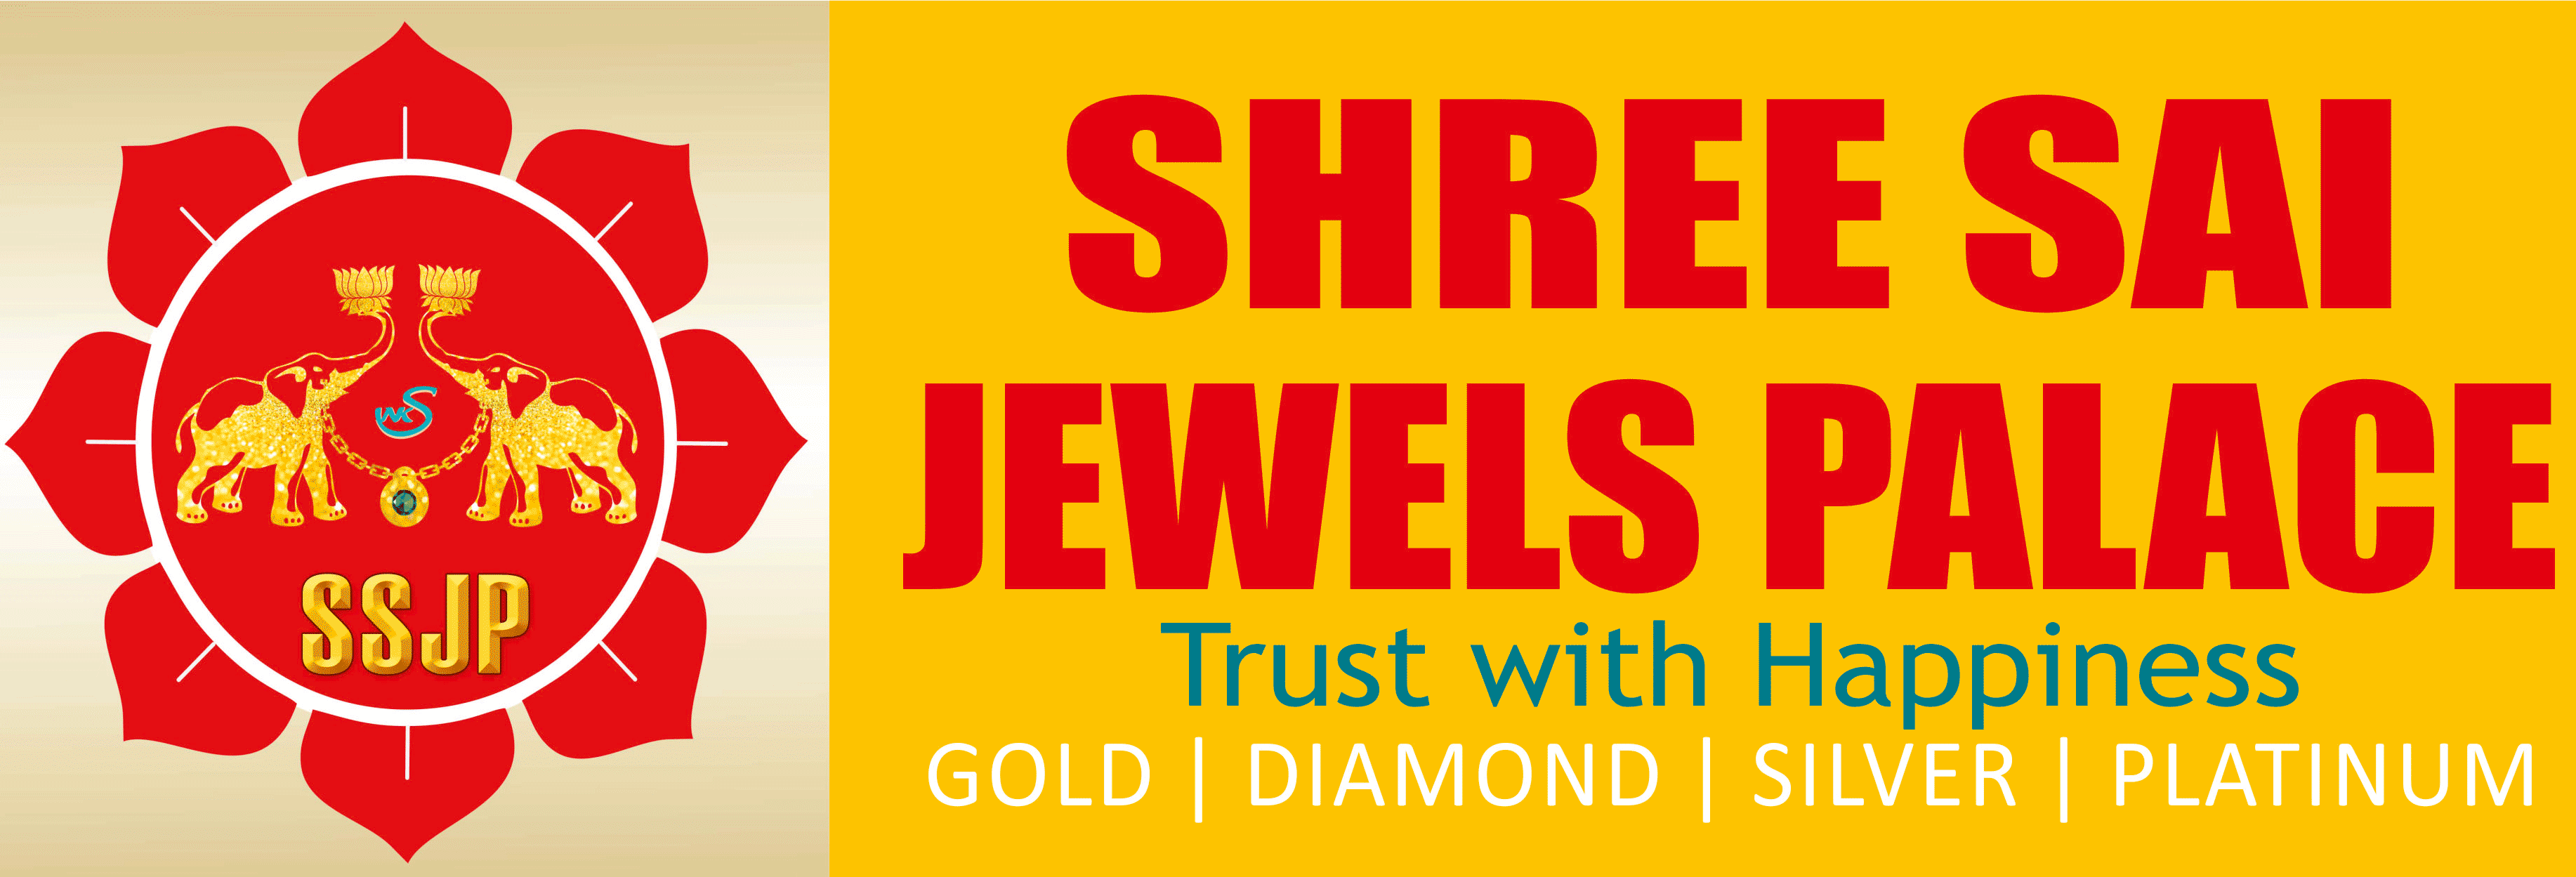 Shree Sai Jewels Palace